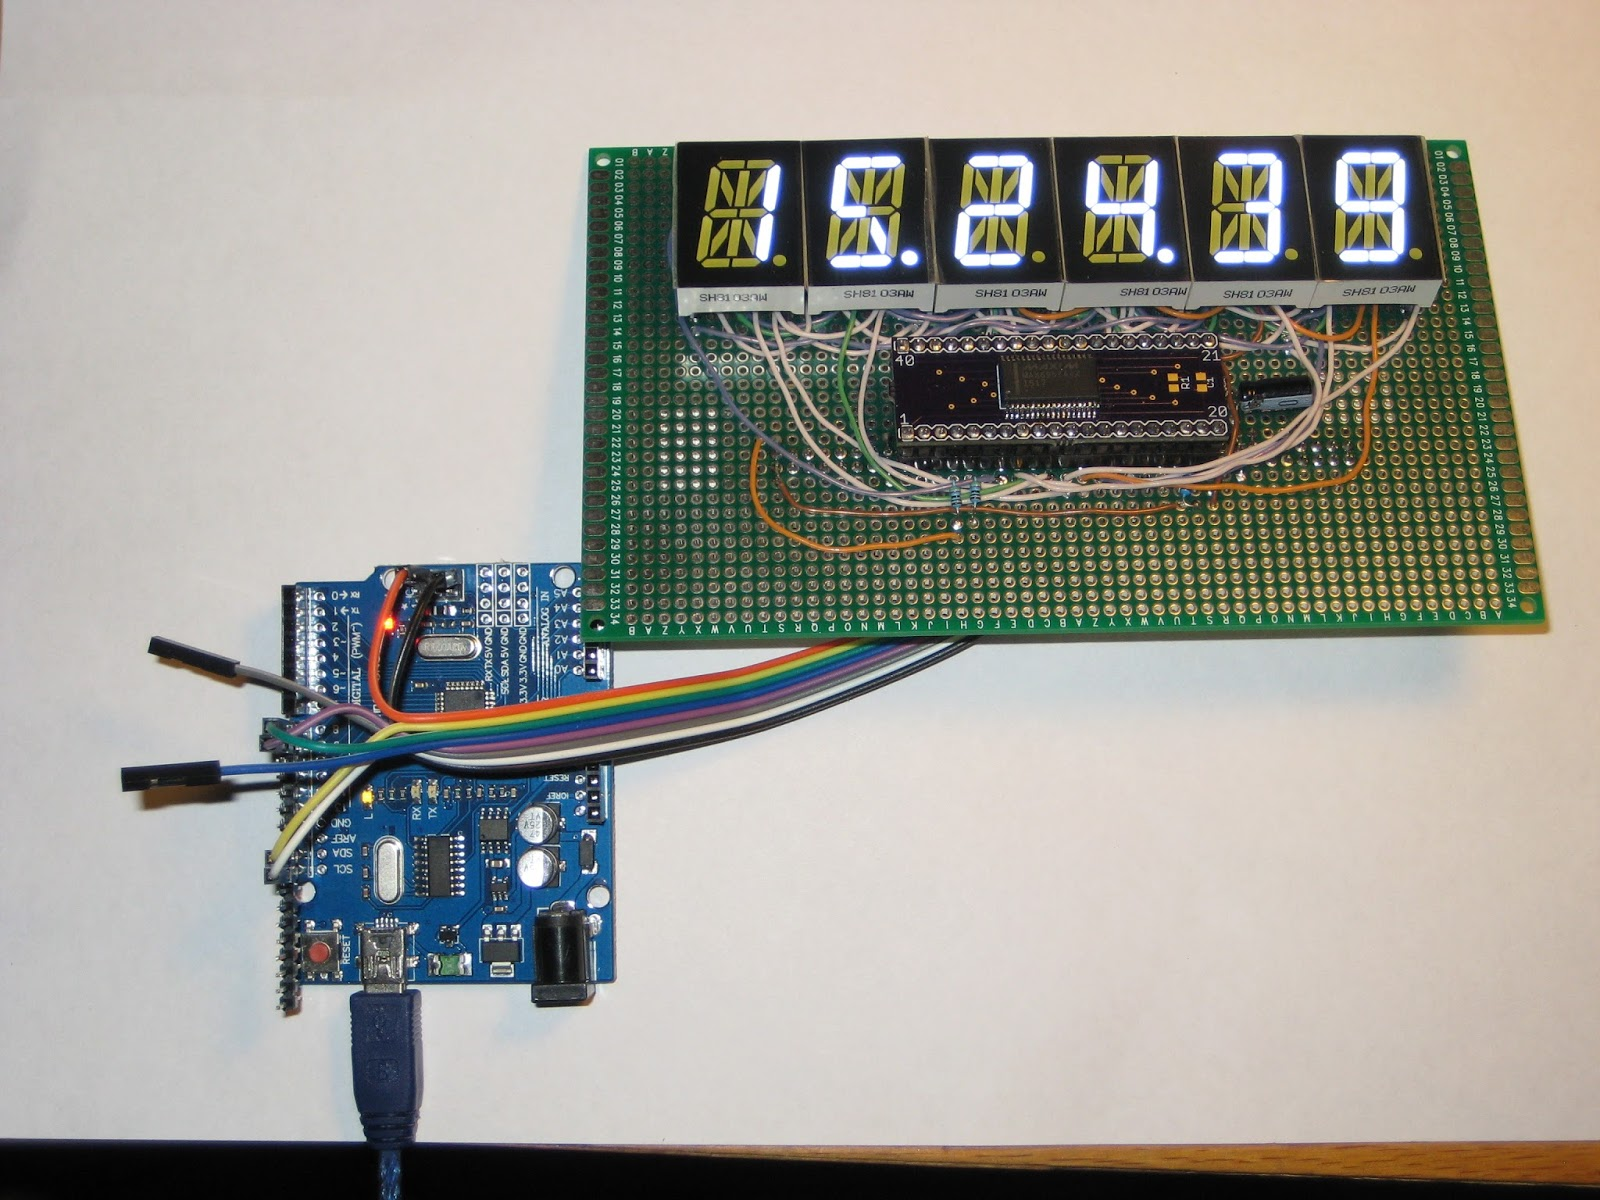 Posts With 7 Segment Led Label Arduino Display Wiring On Circuit Diagram